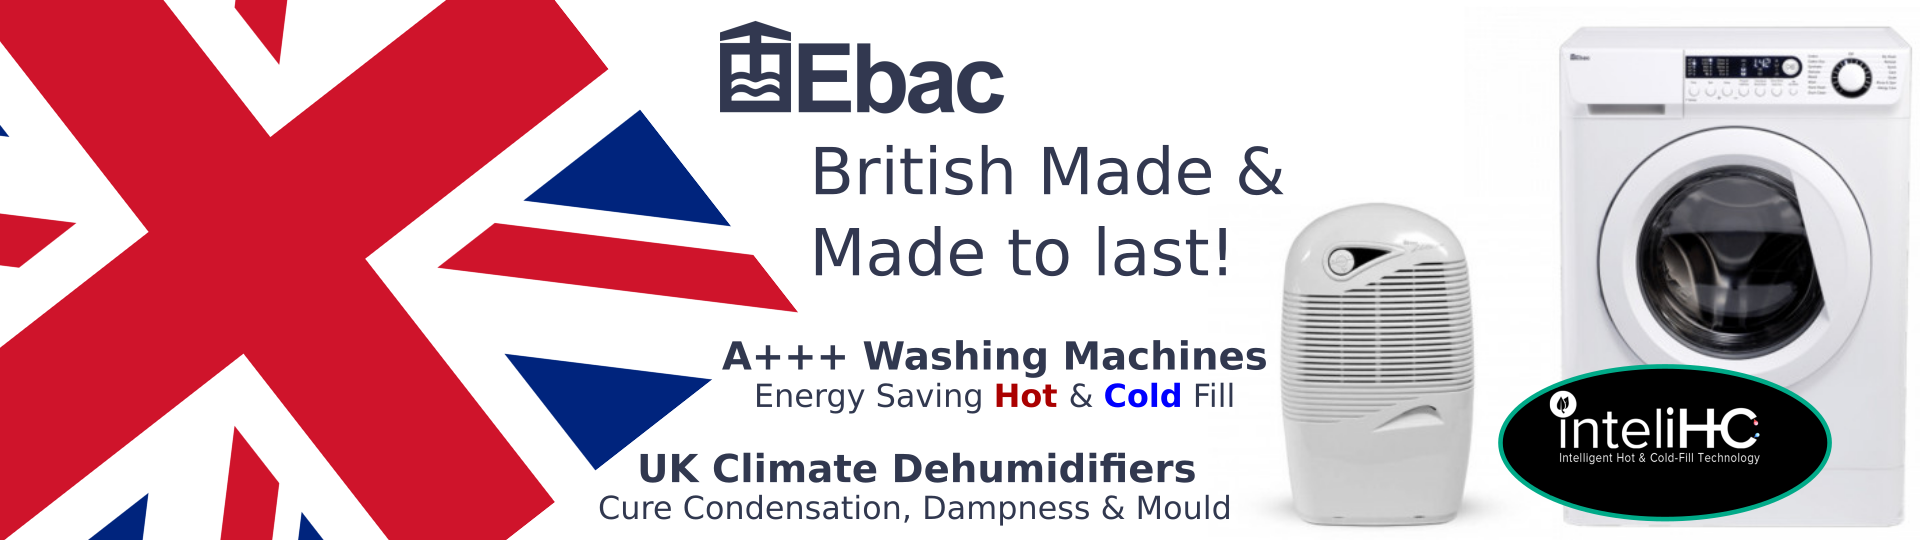 Ebac Washing Machines & Dehumidifiers